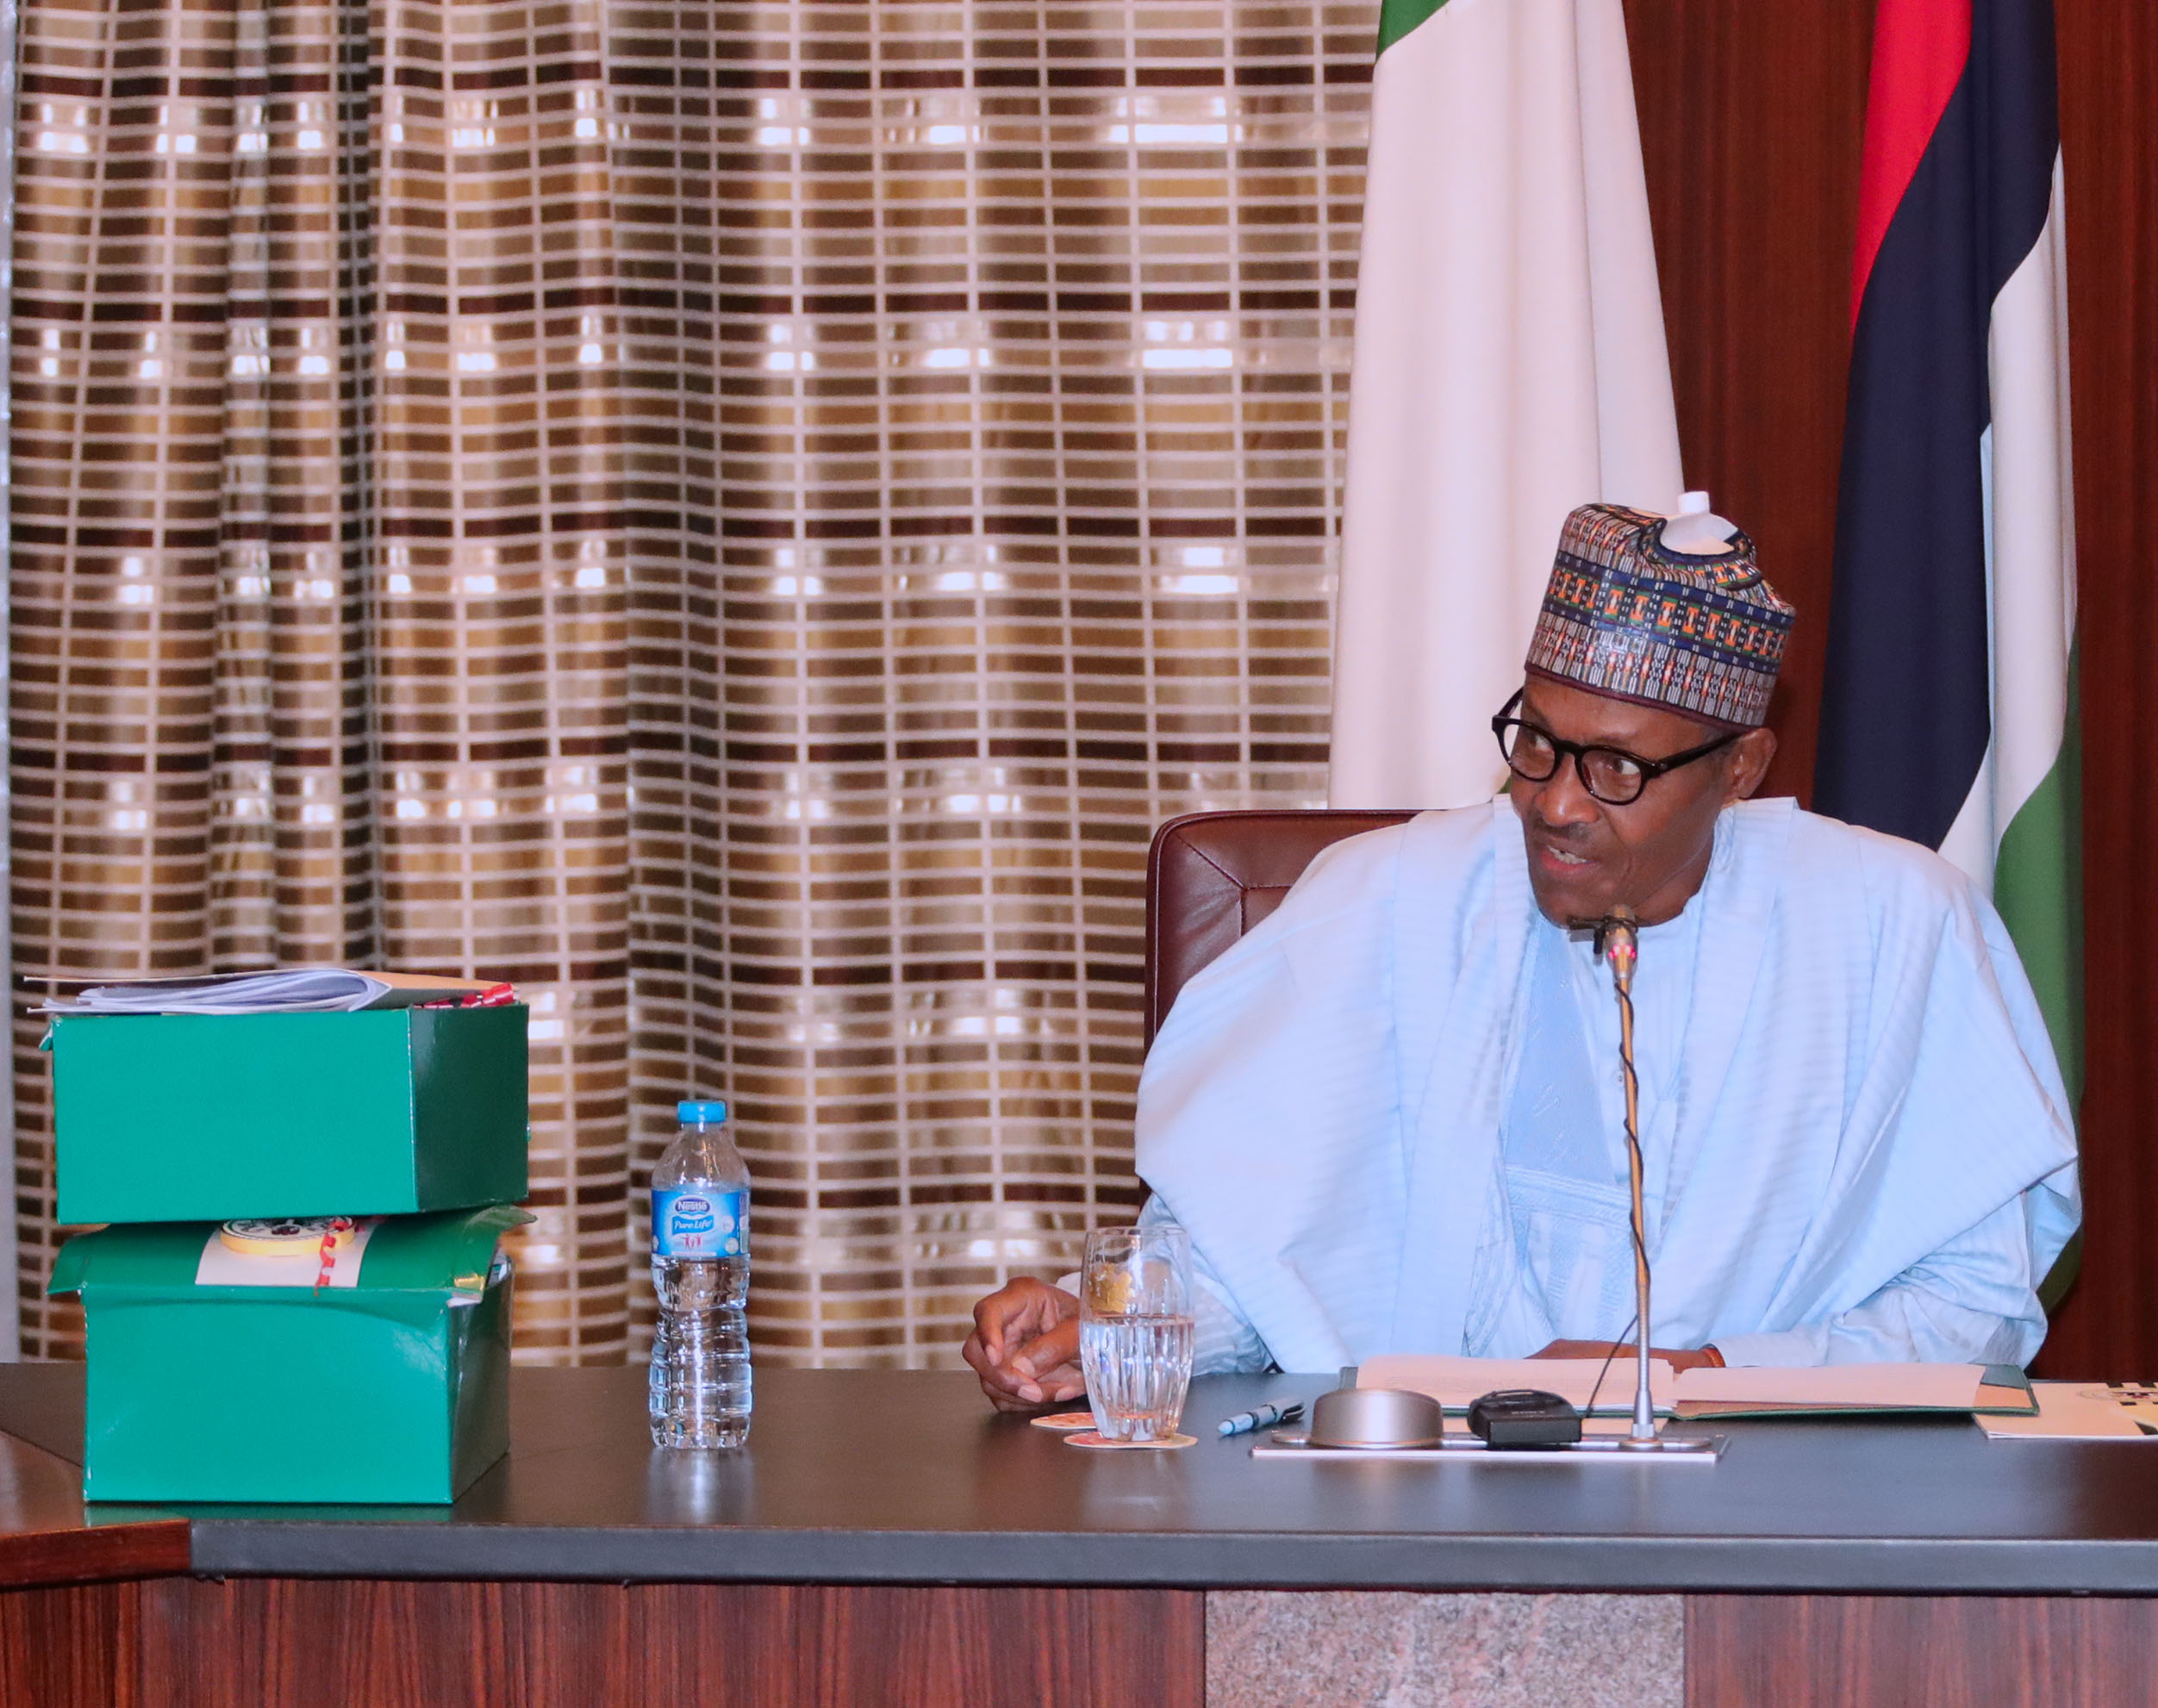 PRESIDENT BUHARI SIGNS 2018 BUDGET 0A. 2018 BUDGET SIGNED: President Muhammadu Buhari Speaking after the Signing of the 2018 Budget at the State House in Abuja. PHOTO; SUNDAY AGHAEZE. JUNE 20 2018